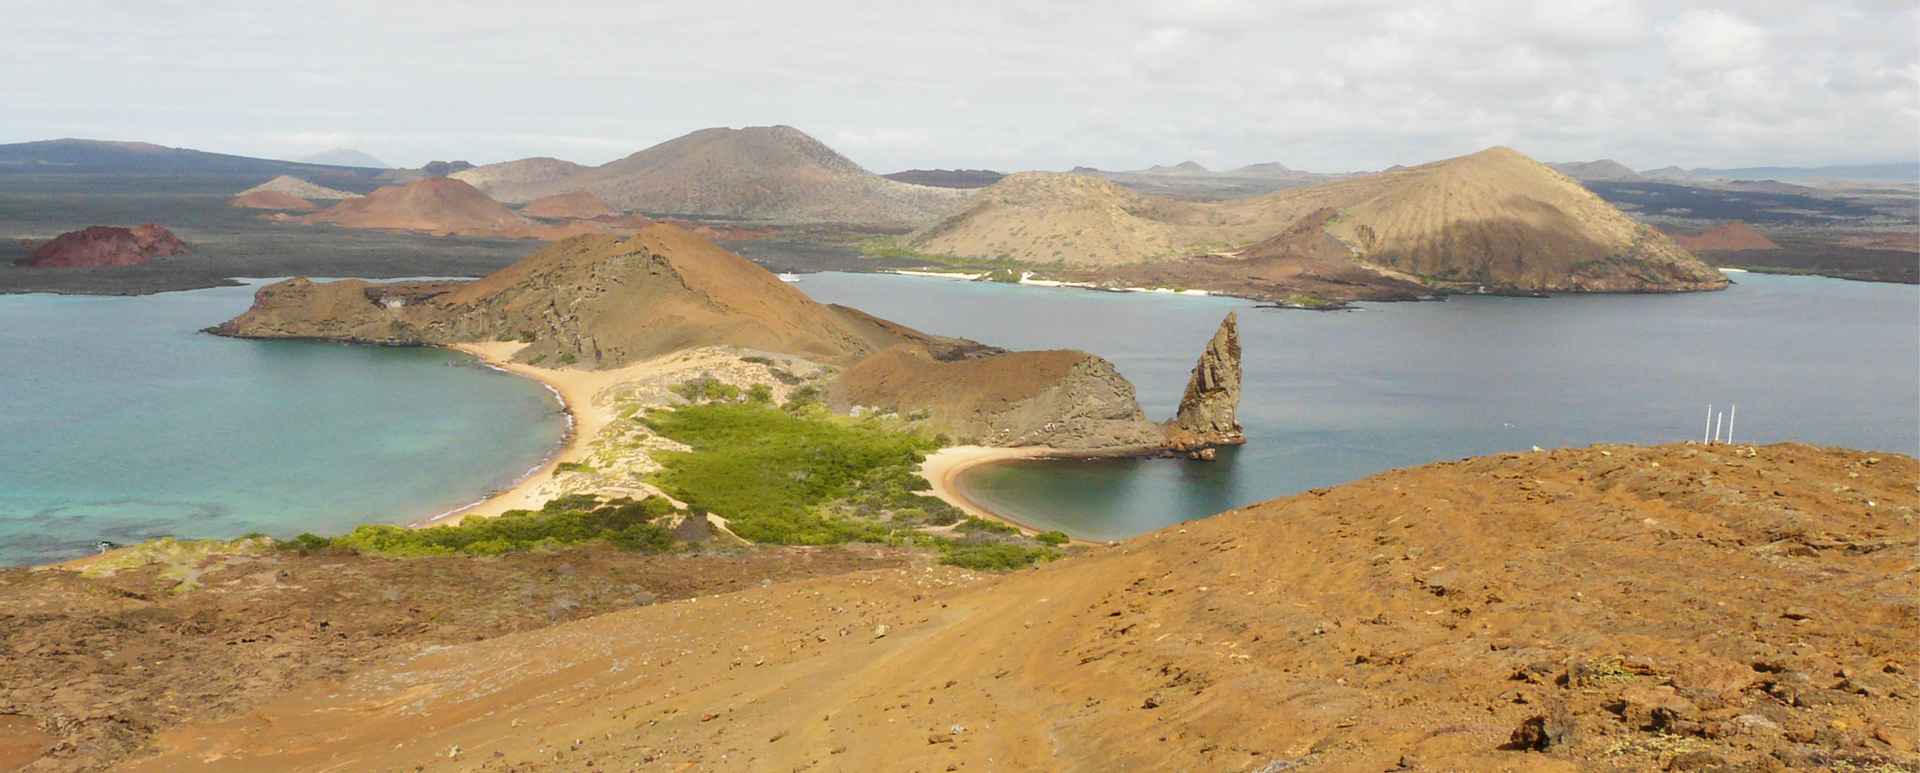 Bartolome Island view point